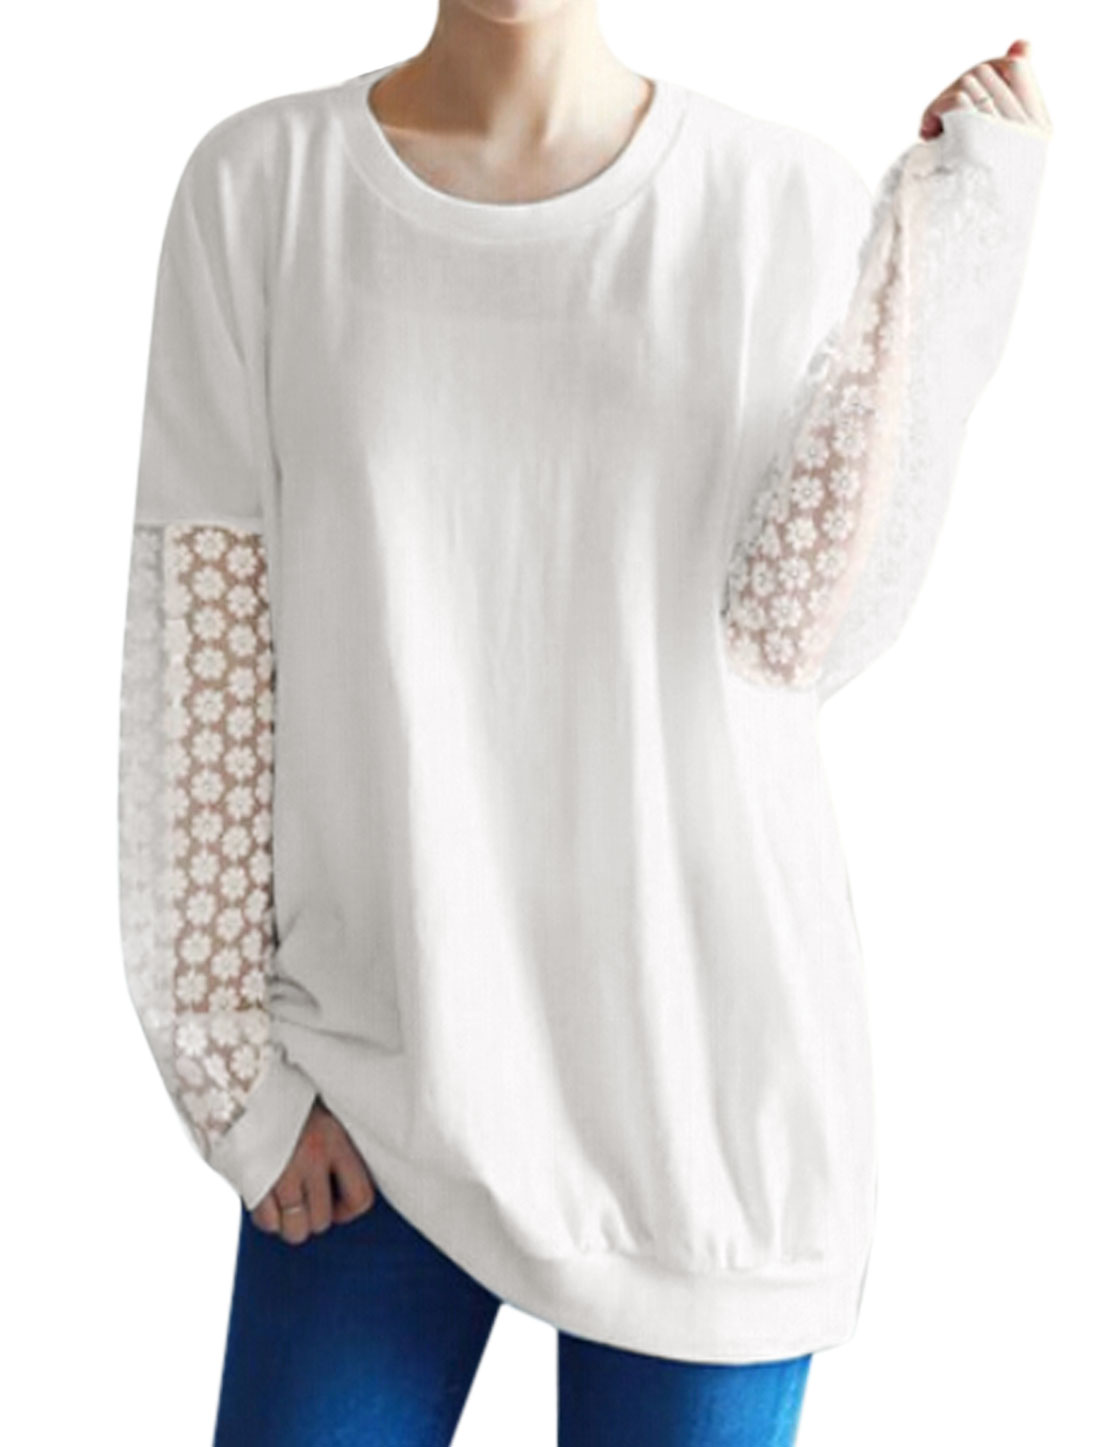 Women Long Sleeves Crochet Design Organza Panel Tunic T-Shirt White S